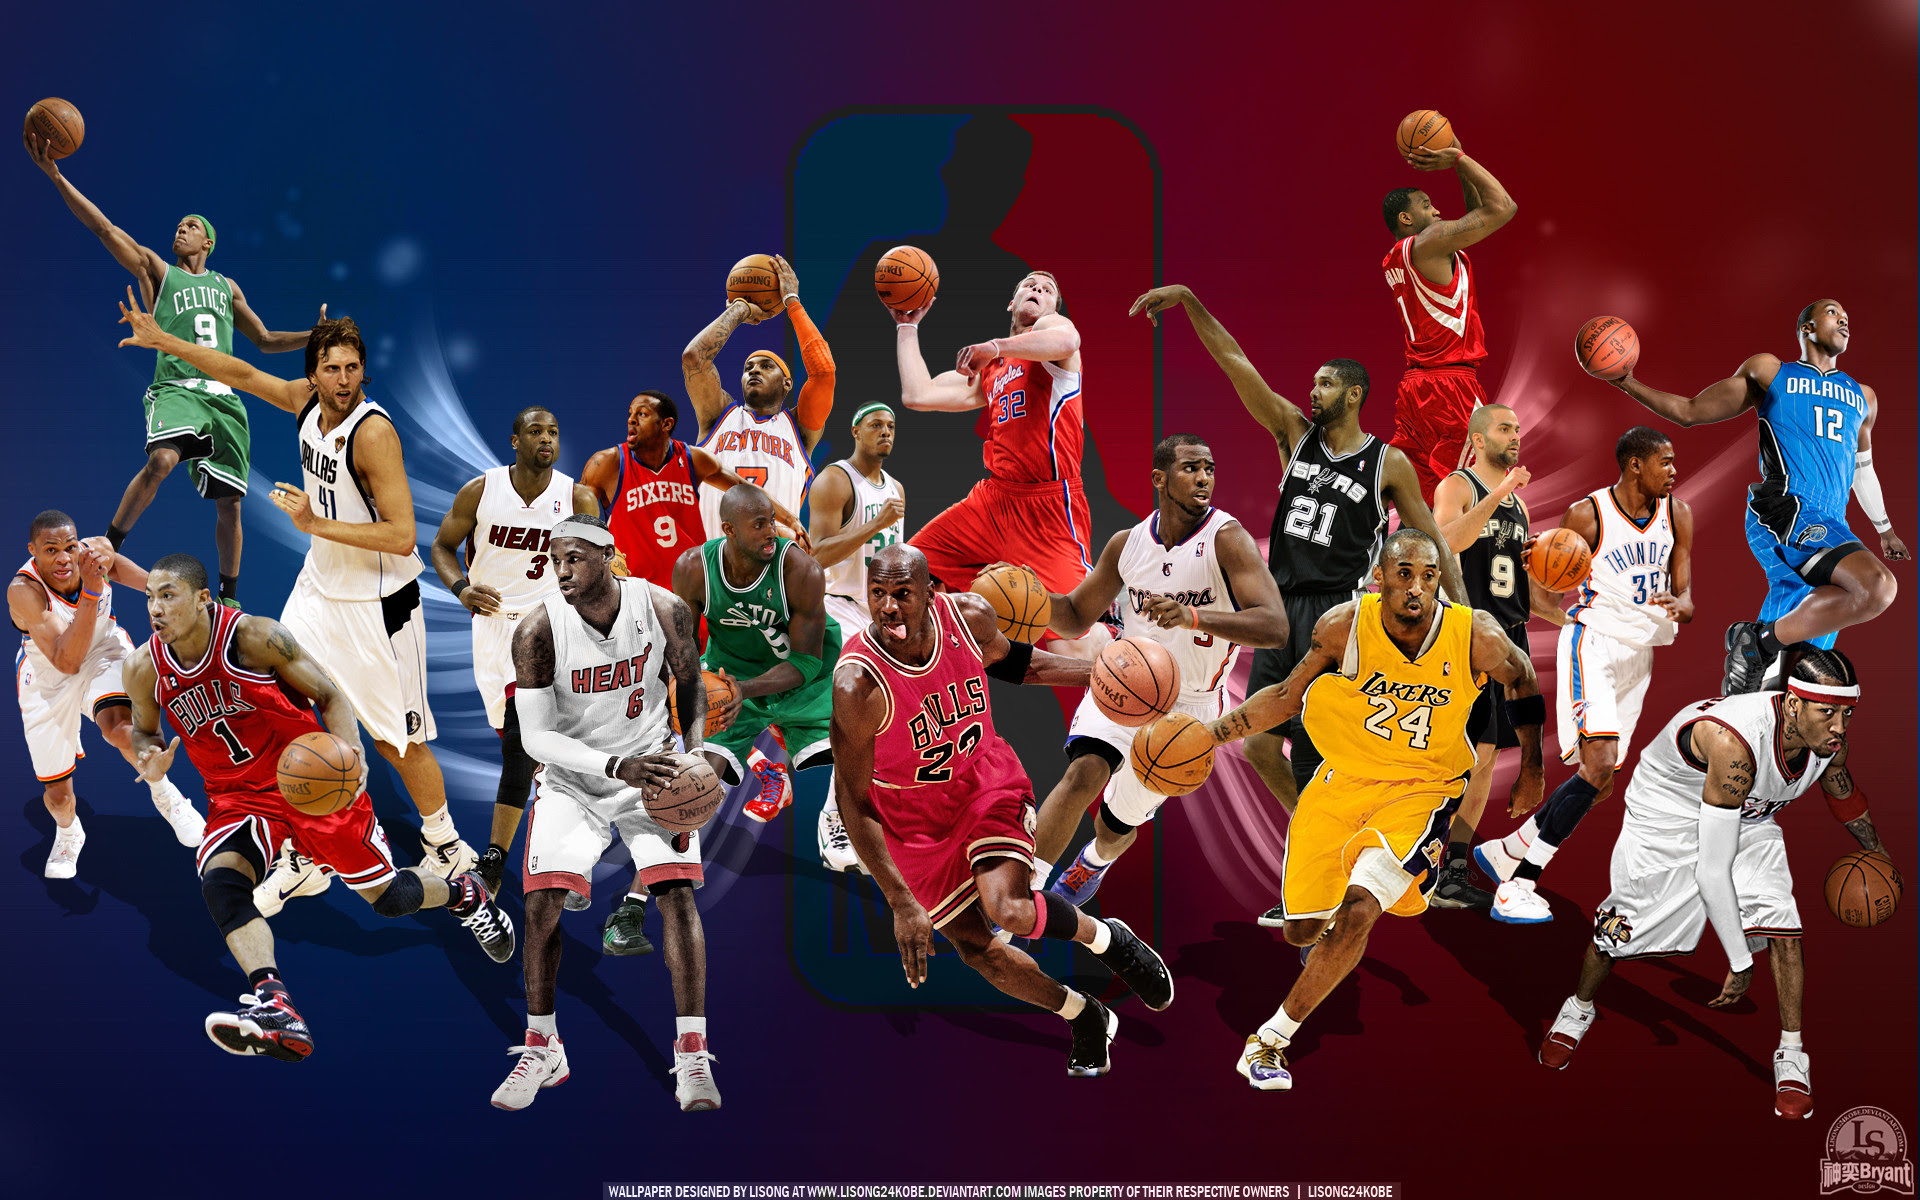 Nba Wallpaper Desktop Basketball Wallpapers 81 Images